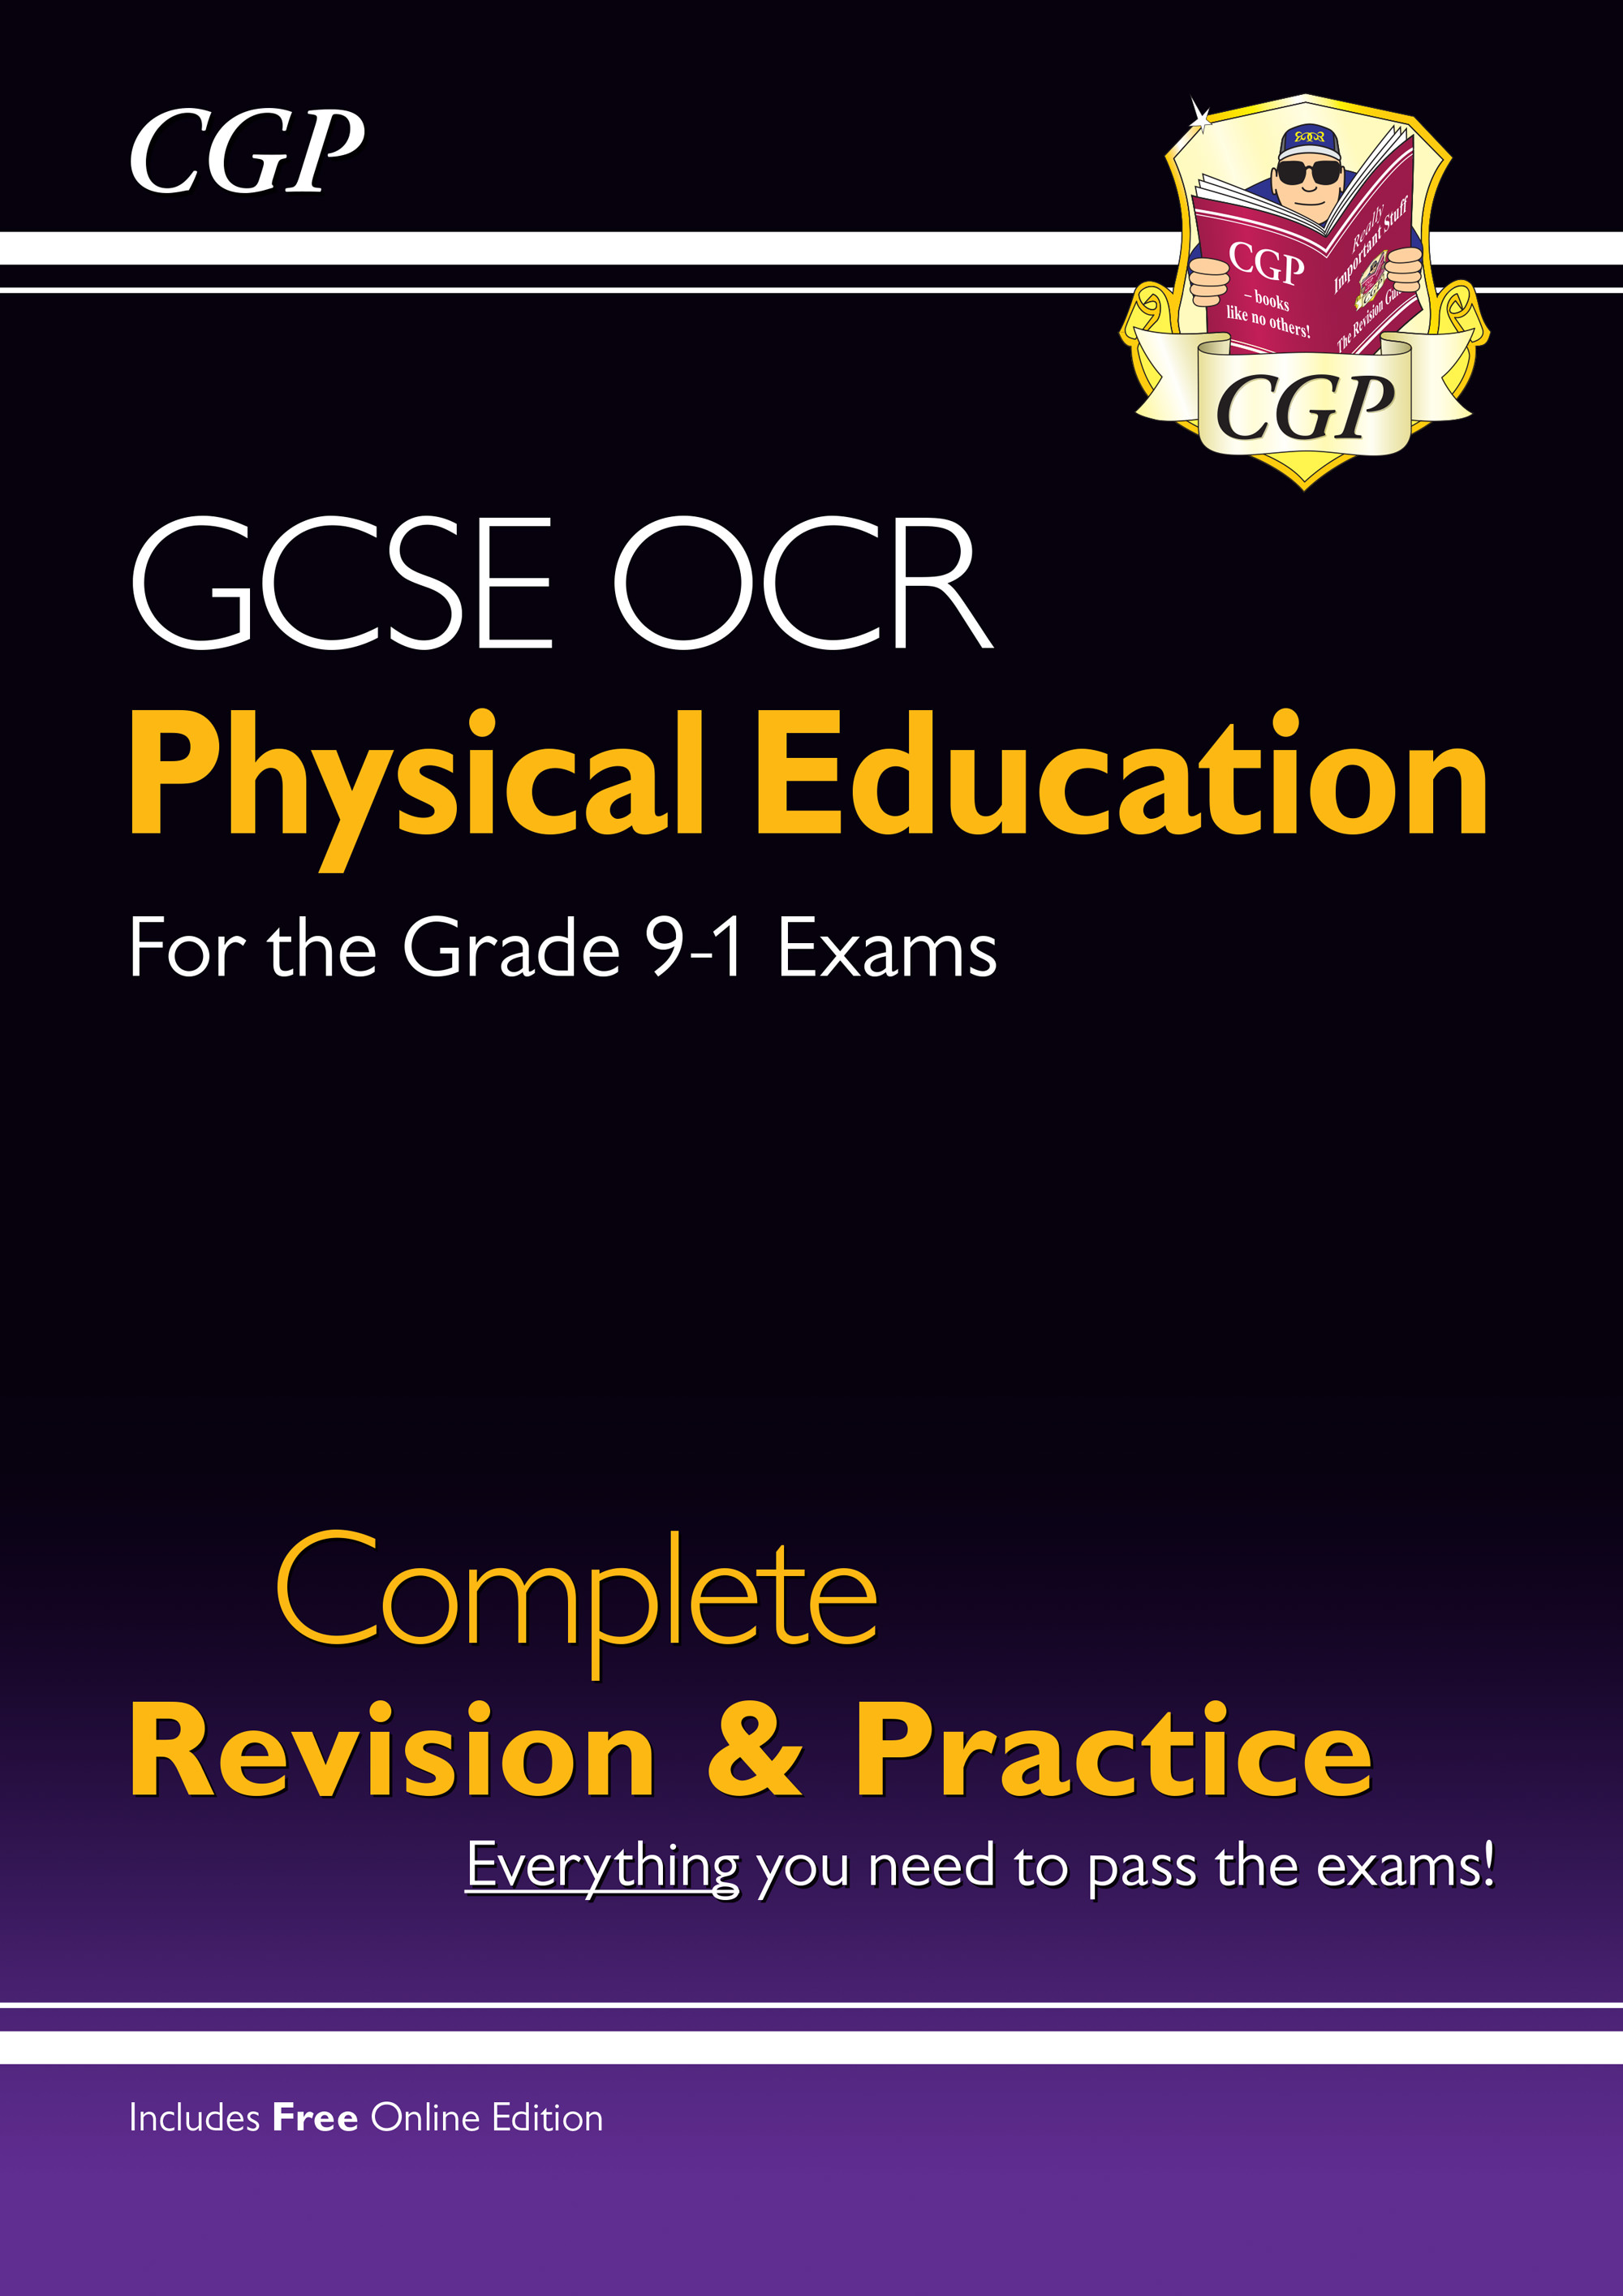 JRS41 - Grade 9-1 GCSE Physical Education OCR Complete Revision & Practice (with Online Edition)